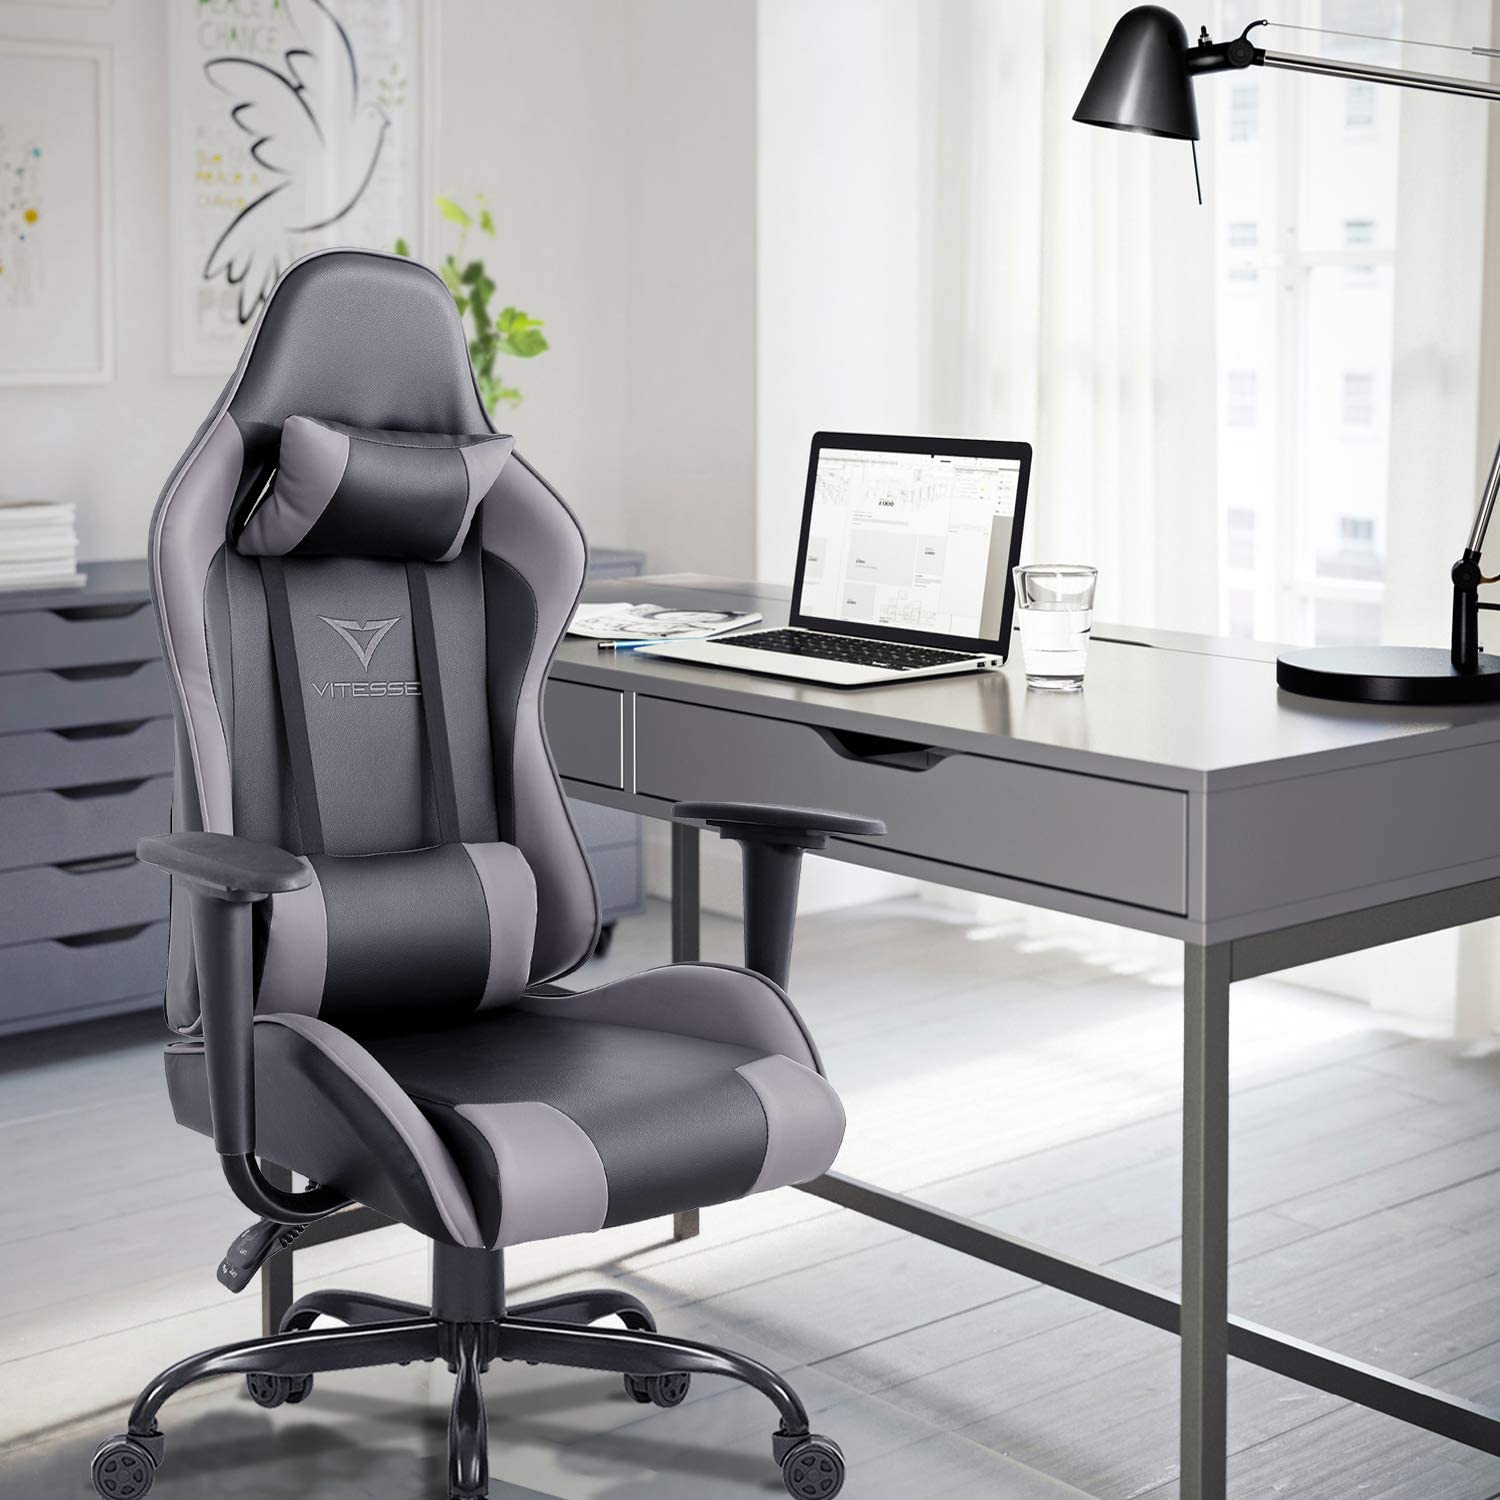 Vitesse Gaming Chair Sillas Gaming Ergonomic Computer Desk Chair High Back Racing Style Comfortable Chair Swivel Executive Leather Chair with Lumbar Support and Headrest Grey